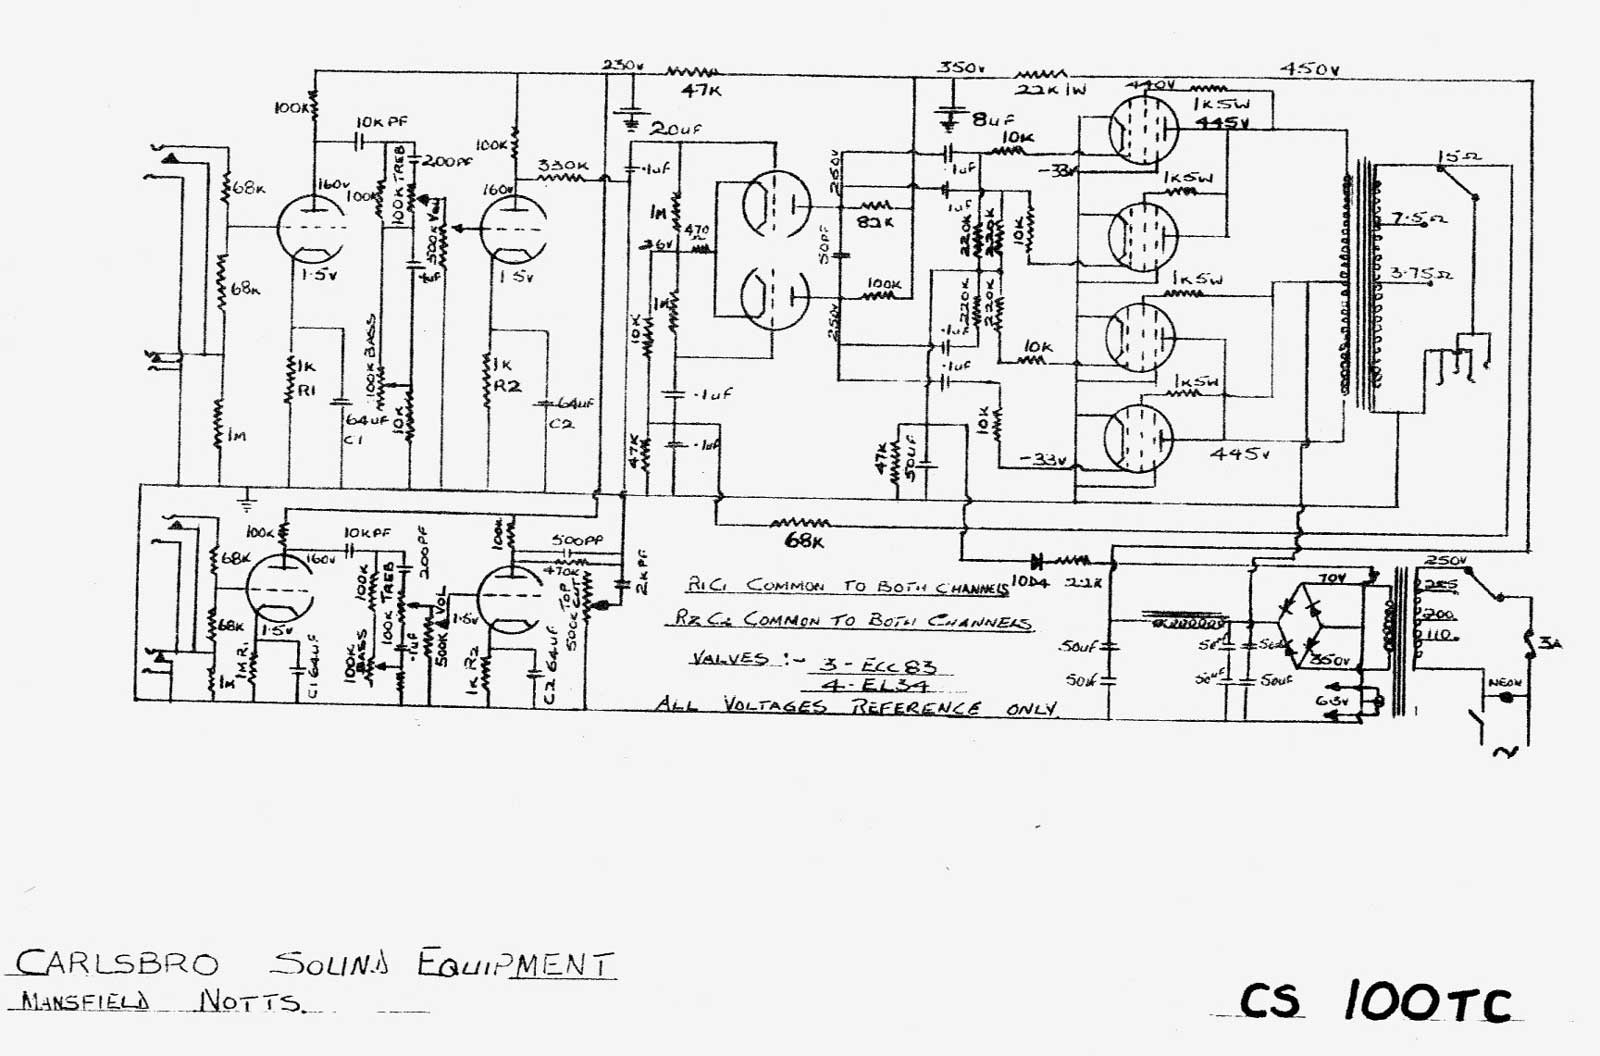 Carlsbro CS100 T.C. Amp Schematic on technical drawing, electronic design automation, piping and instrumentation diagram, schematic editor, data flow diagram, diagramming software, circuit diagram, function block diagram, block diagram, functional flow block diagram, tube map, straight-line diagram, ladder logic, one-line diagram, control flow diagram, schematic capture,